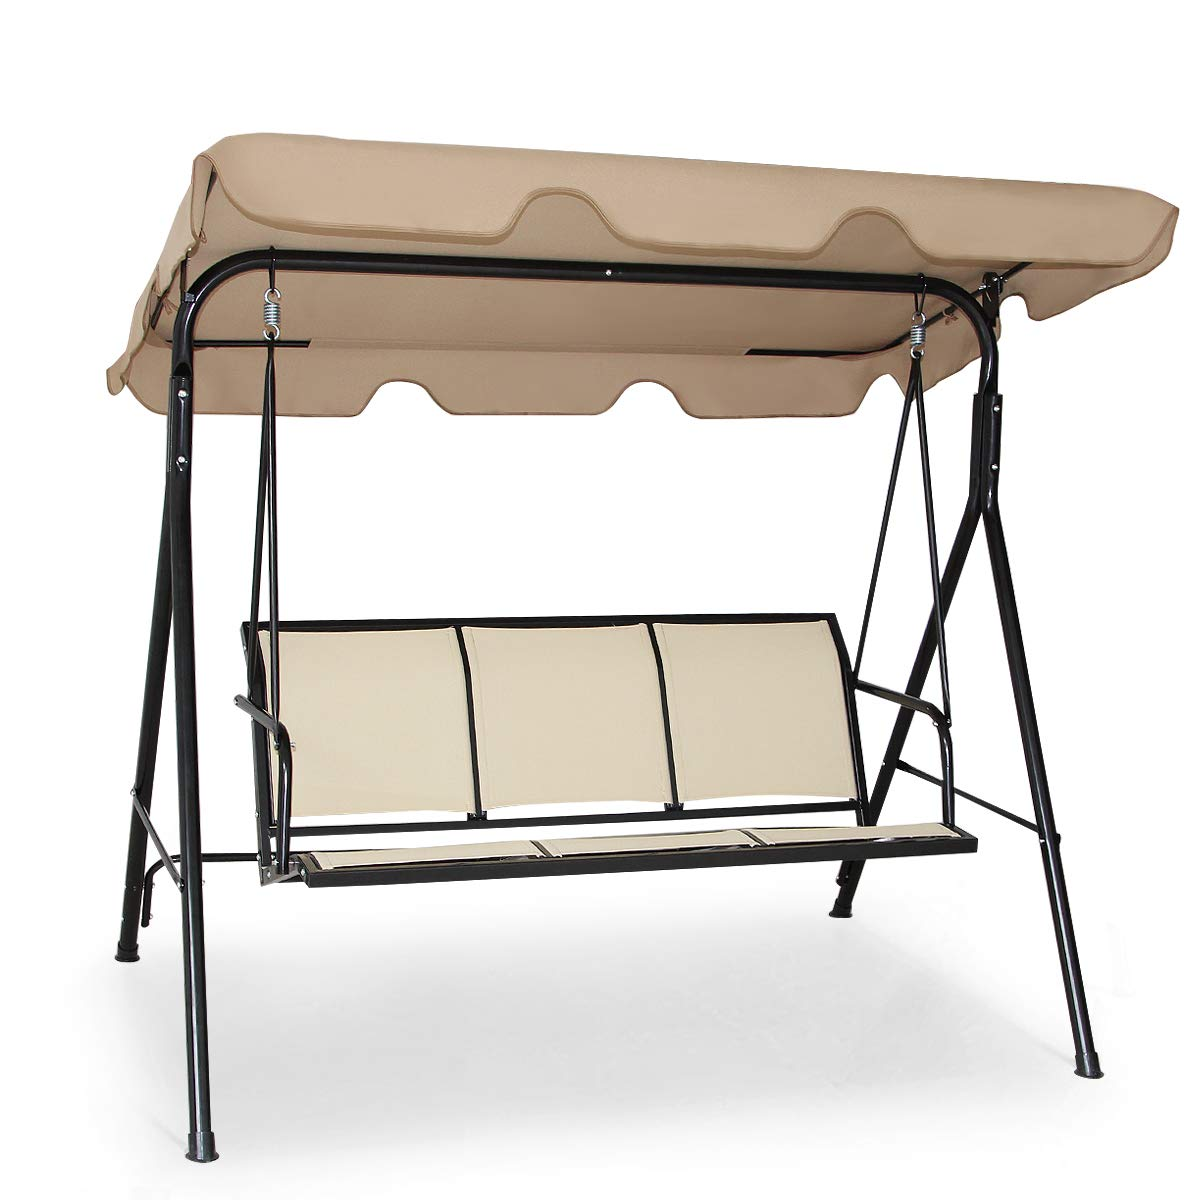 Tangkula 3 Person Patio Swing, Steel Frame with Polyester Angle Adjustable Canopy, All Weather Resistant Swing Bench, Suitable for Patio, Garden, Poolside, Balcony (Brown) by Tangkula